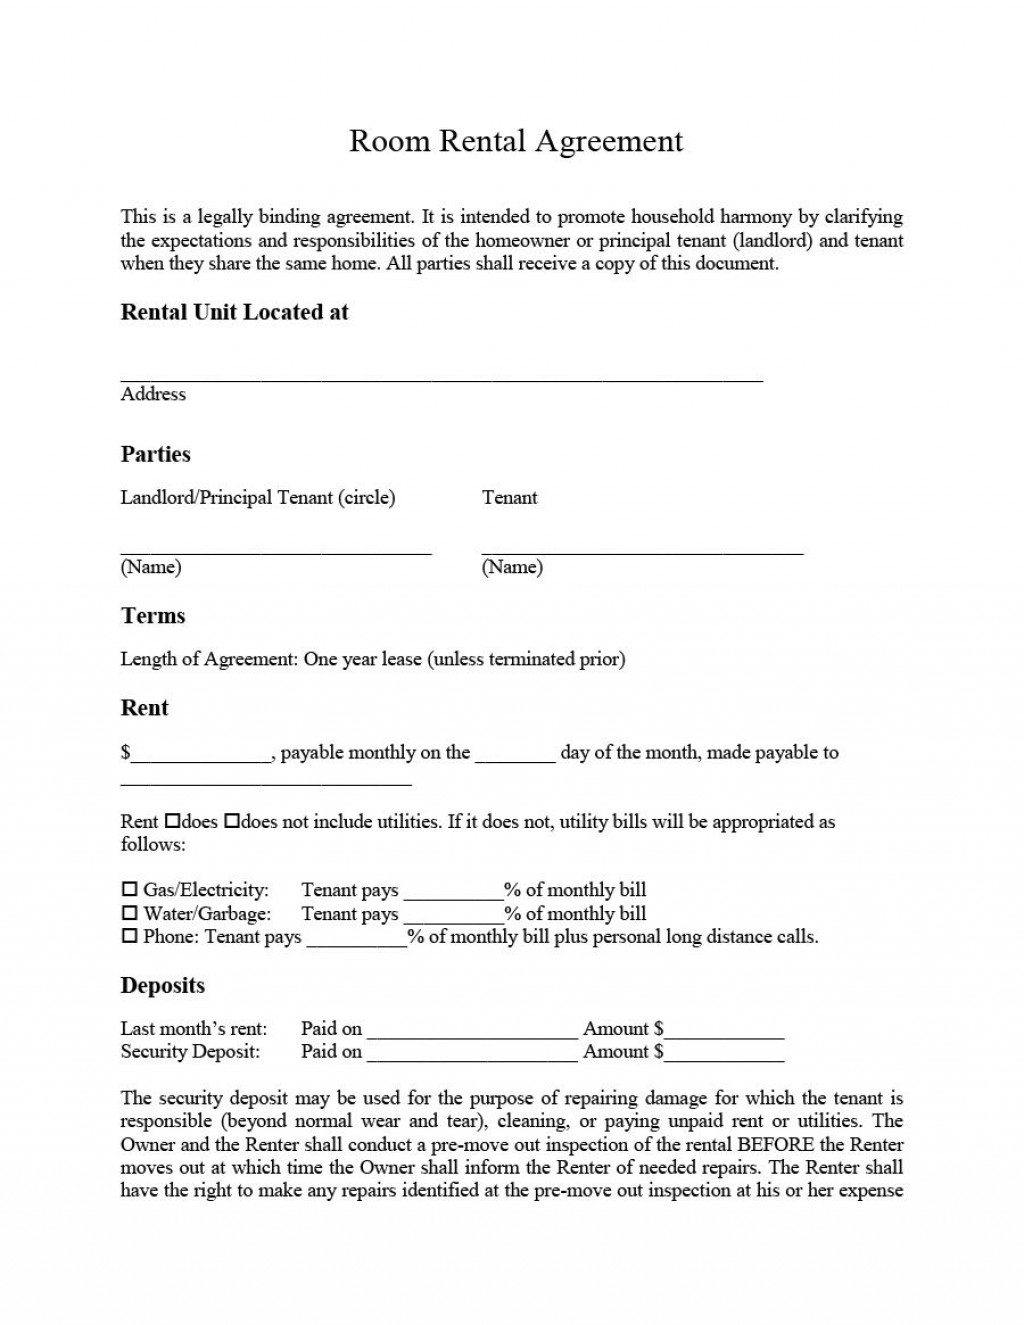 006 Archaicawful Room Rental Agreement Template Ireland Concept Large